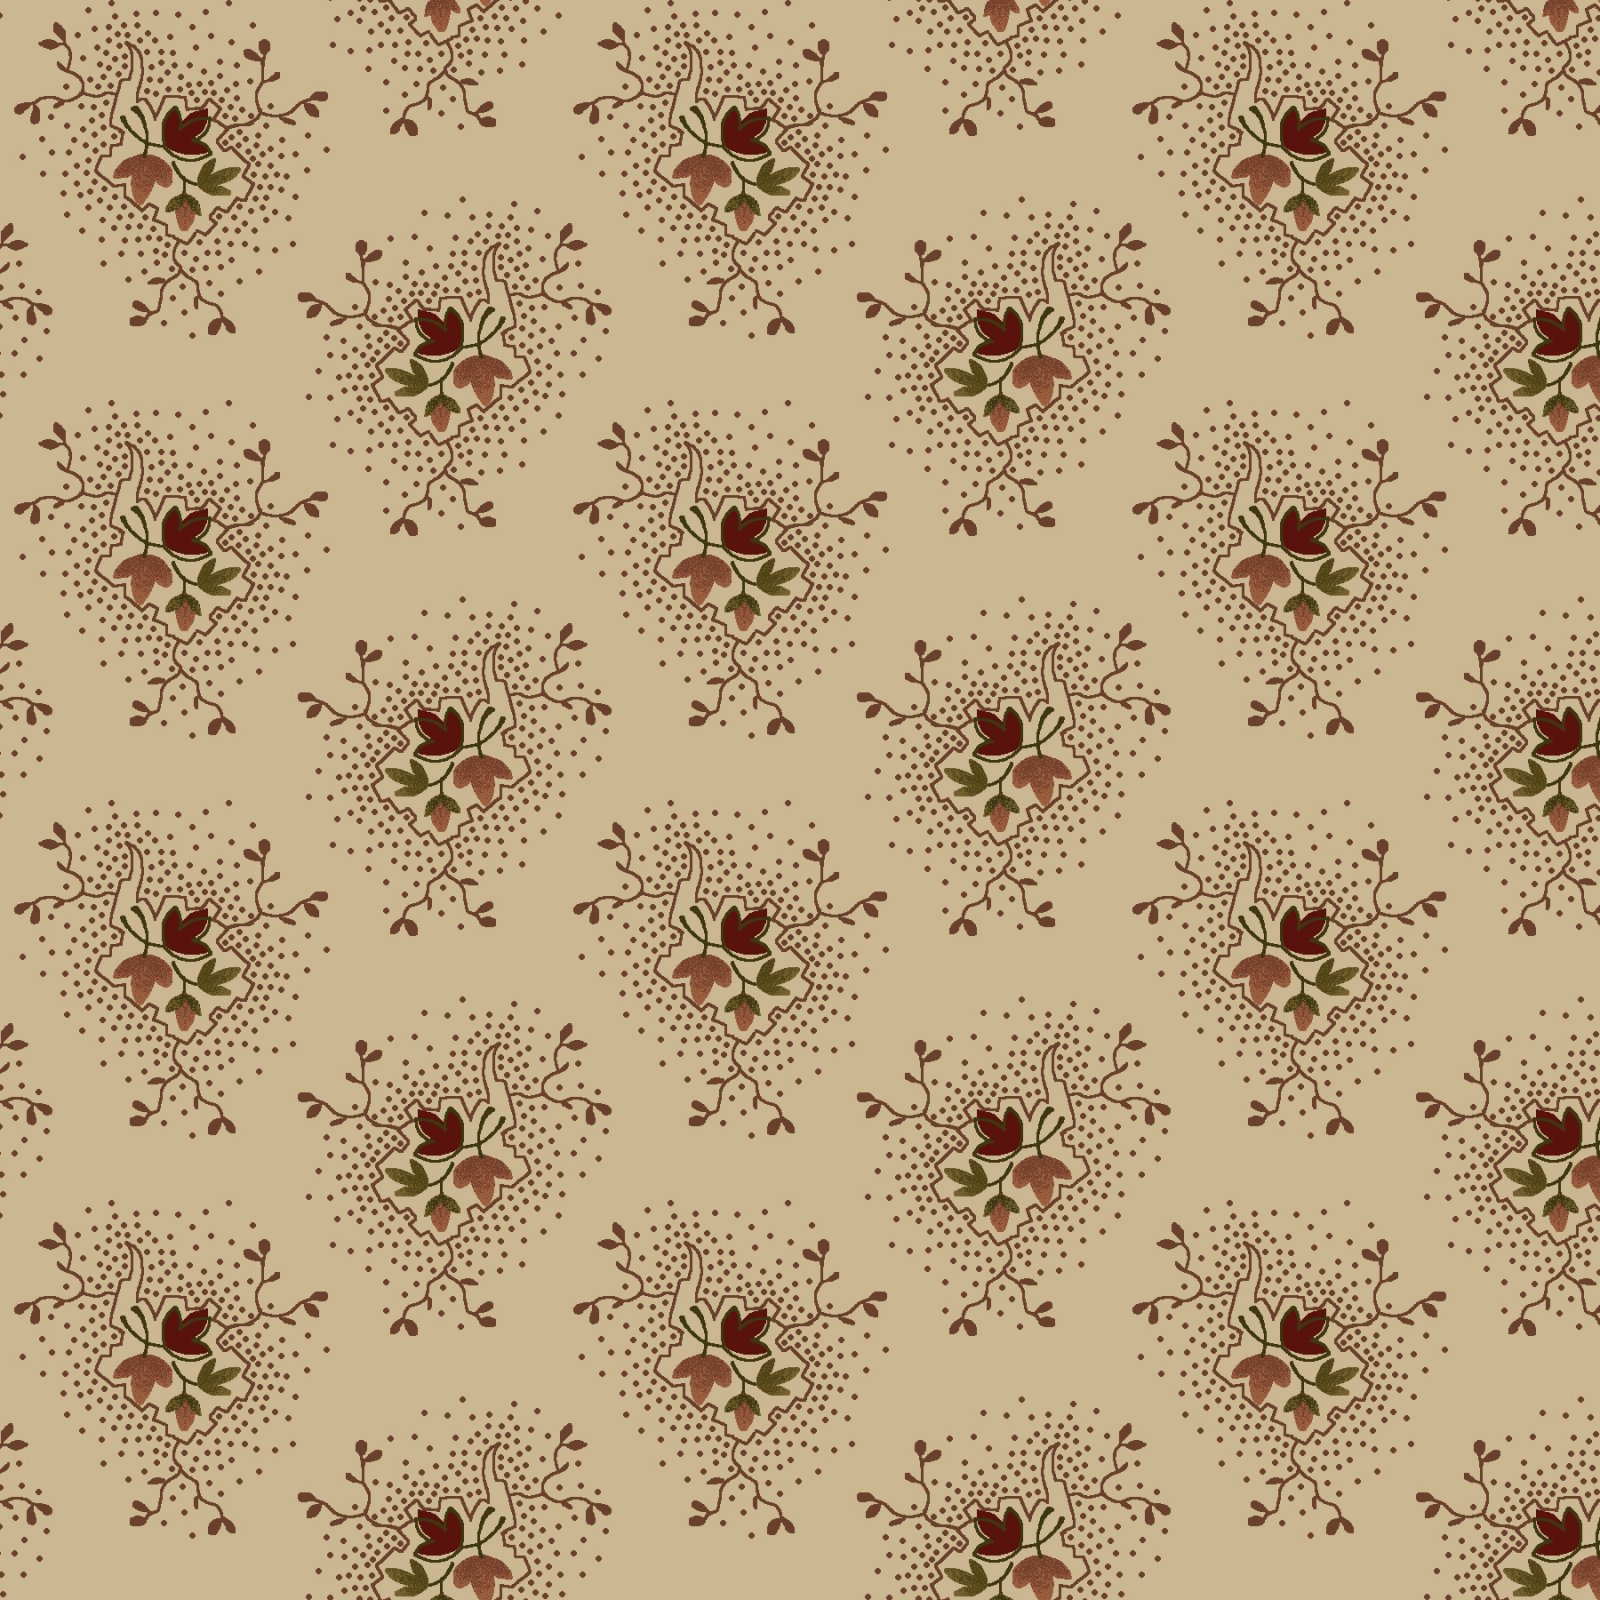 Buttermilk Blossoms  - 2107-46 * 1/2 yard